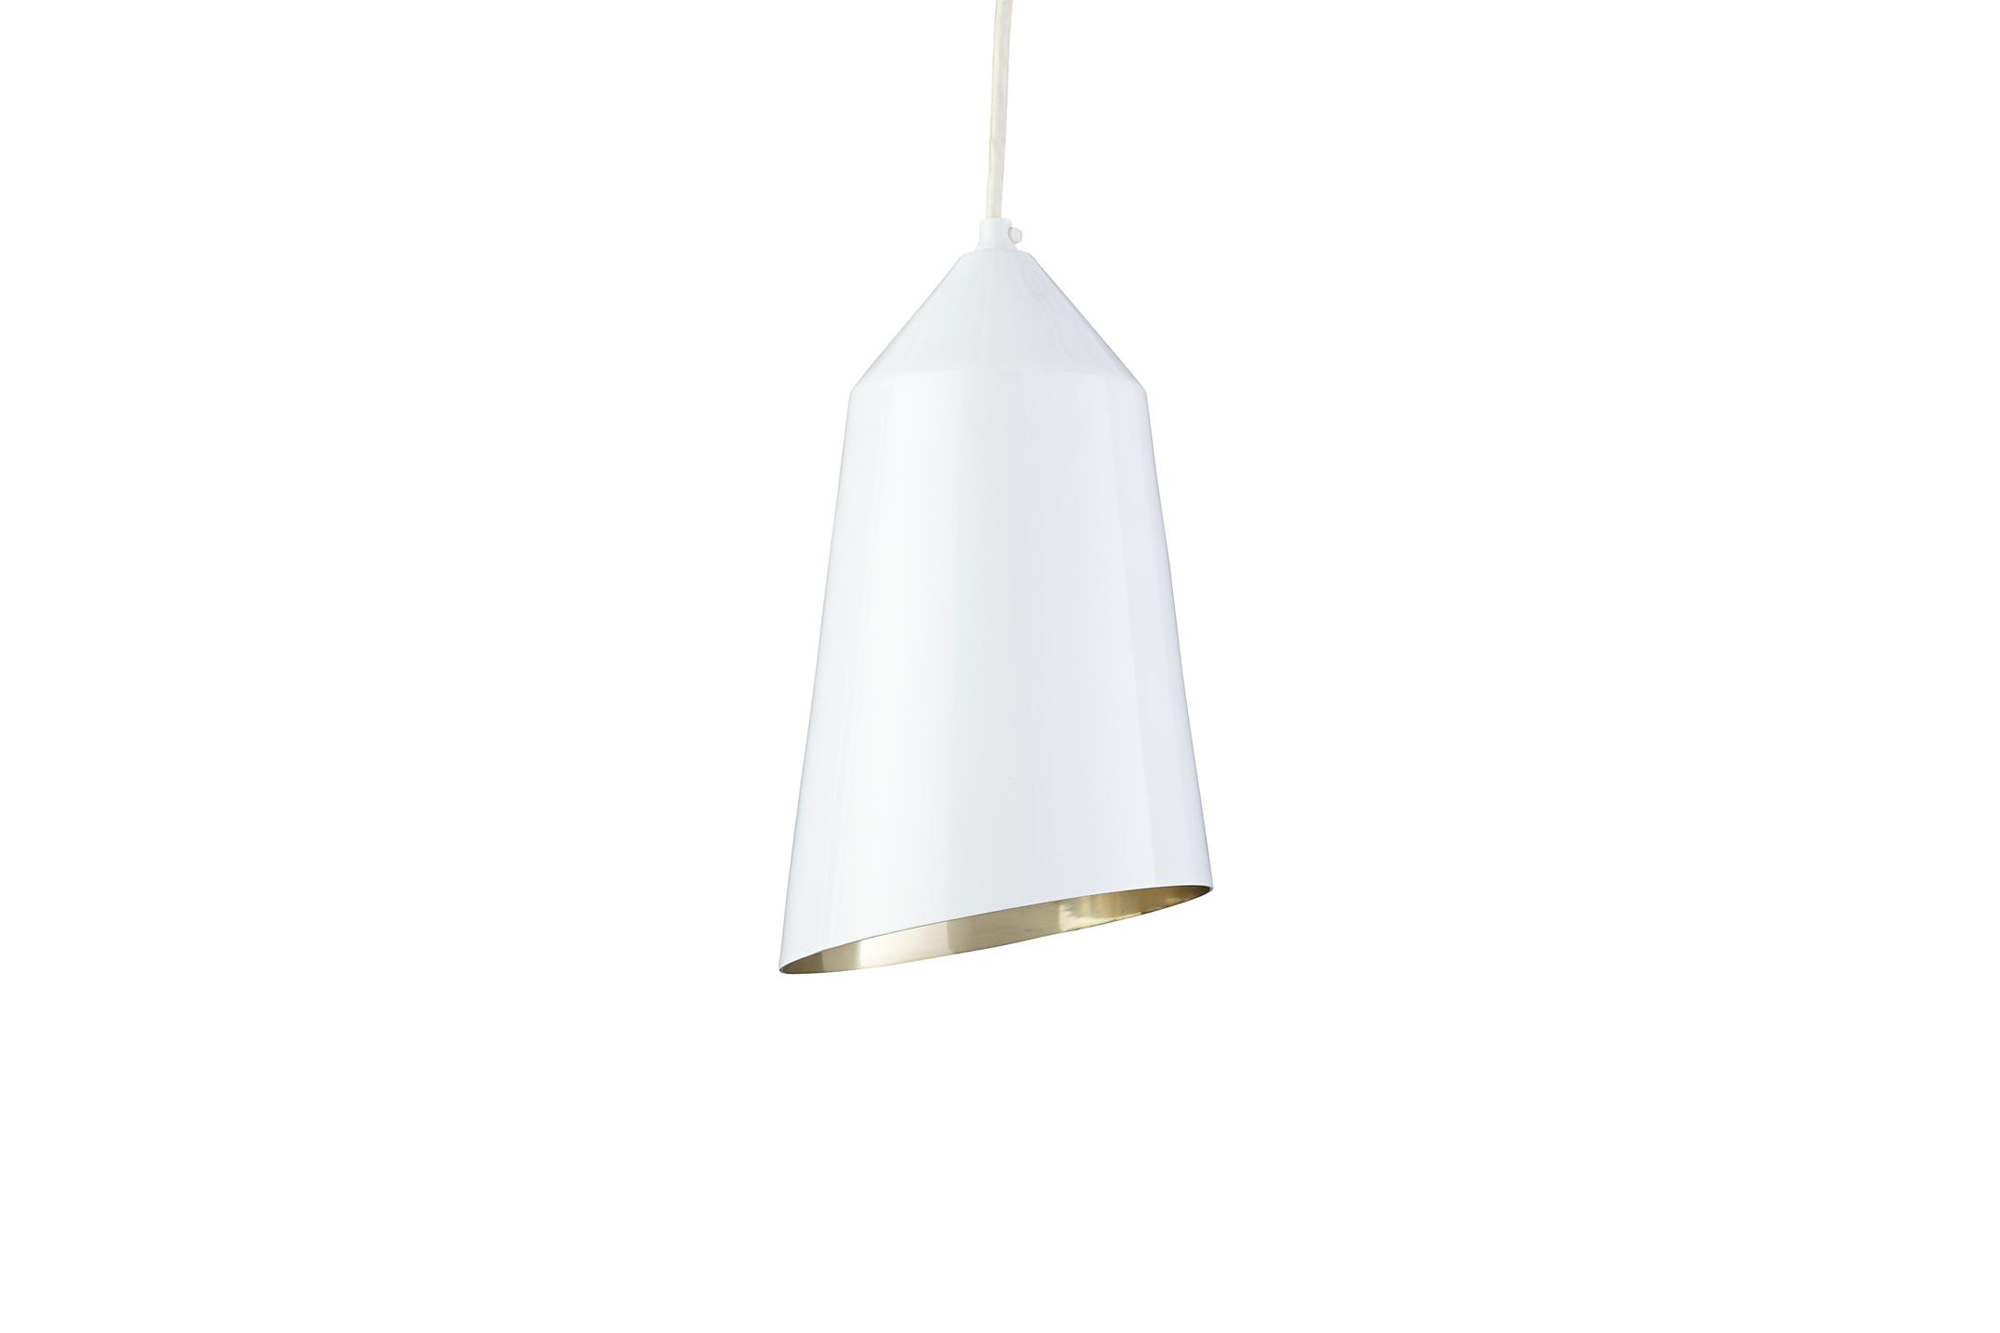 Land of Nod's Mezzanine Pendant